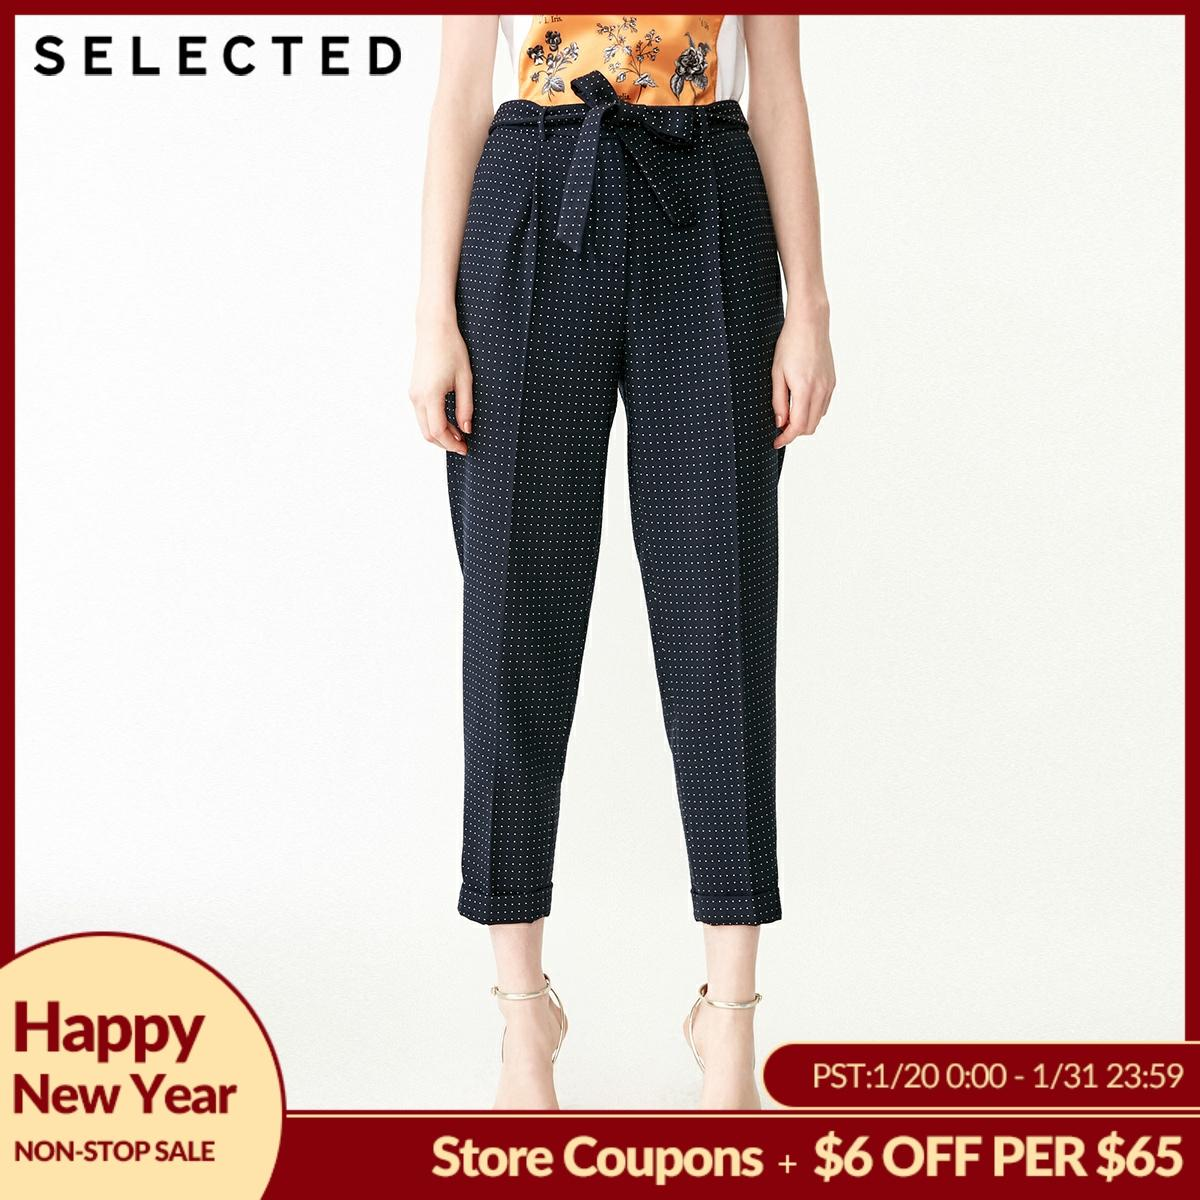 SELECTED Women's Spring Polka Dots Business-casual Crop Suit Pants SIG|419118506